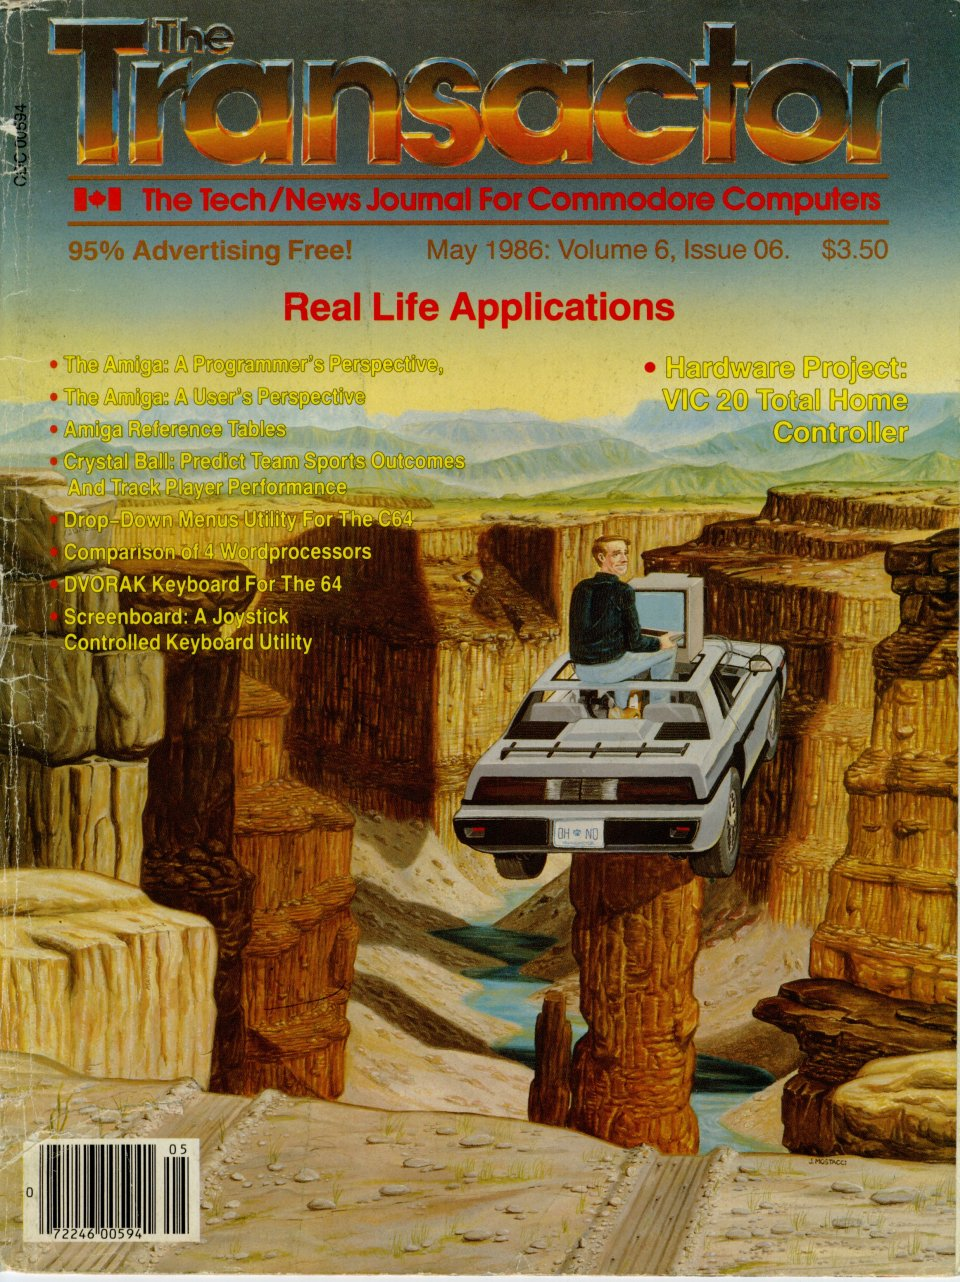 [Cover Page of The Transactor Volume 6, Issue 6: Real Life Applications]